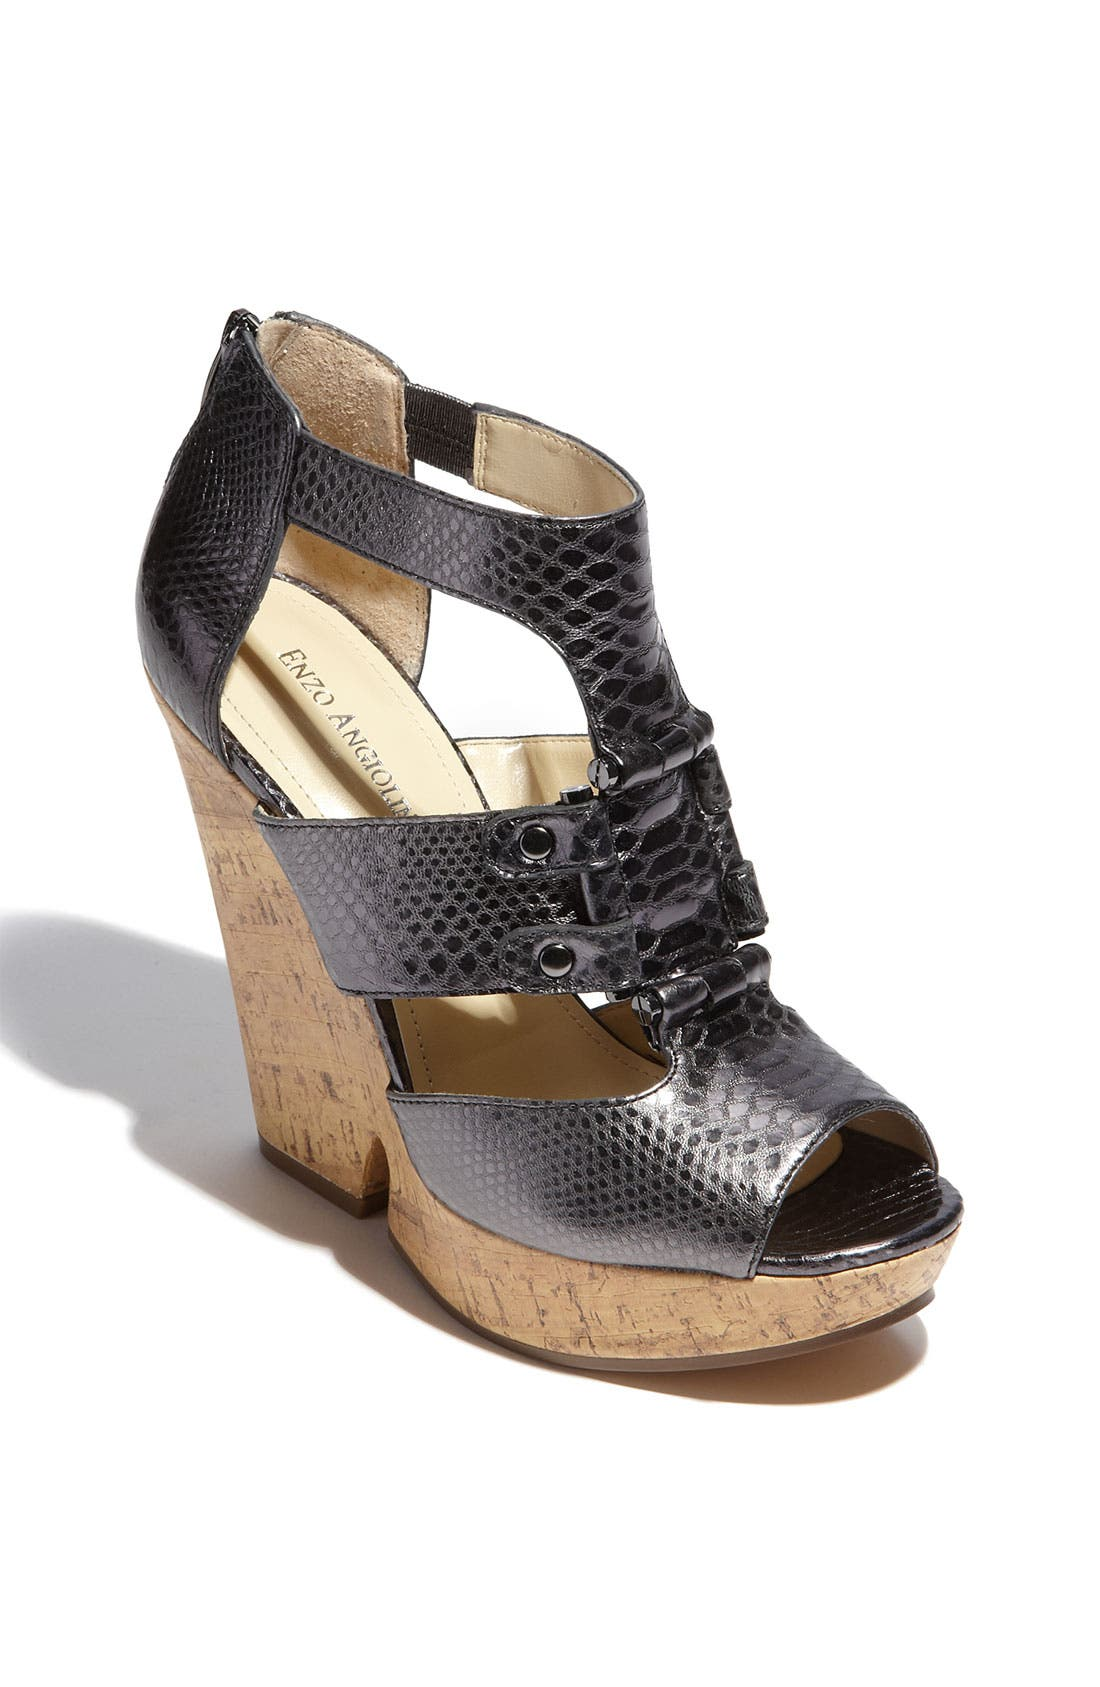 Main Image - Enzo Angiolini 'Dossil' Wedge Sandal